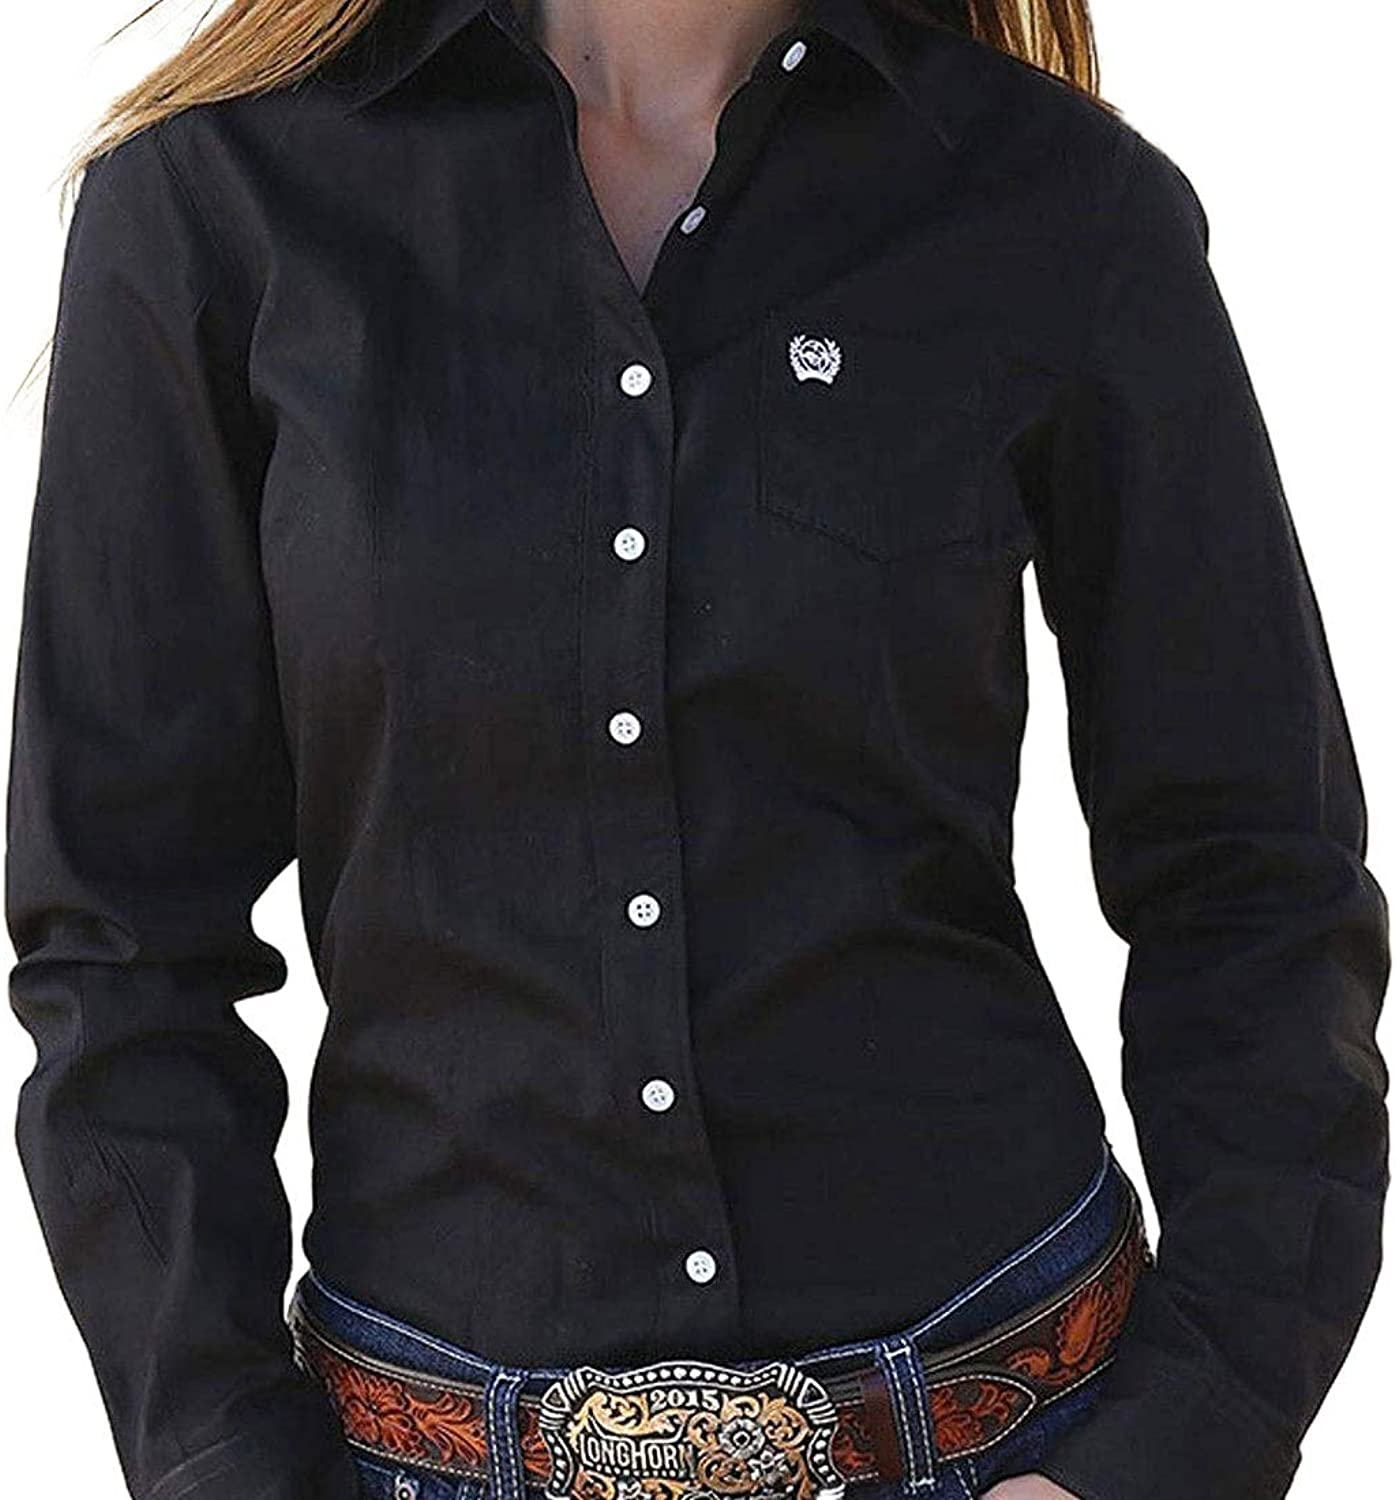 Cinch Western Shirt Womens L S Weave Button Pocket XS Black MSW9164027